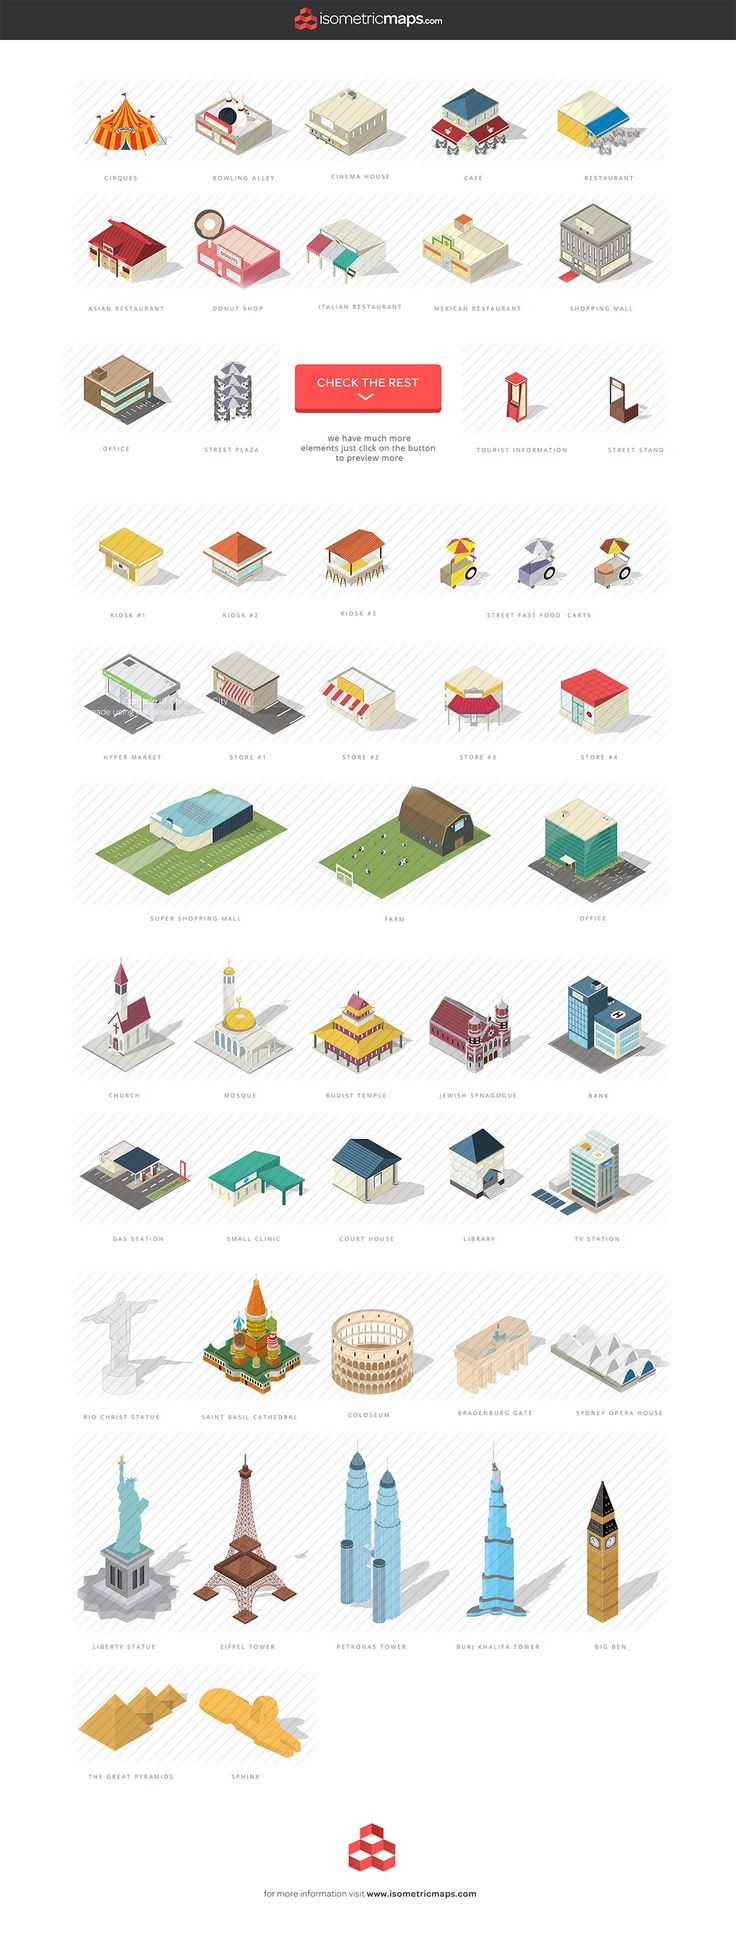 Isometric City Maps Builder by roundicons.com on Creative Market